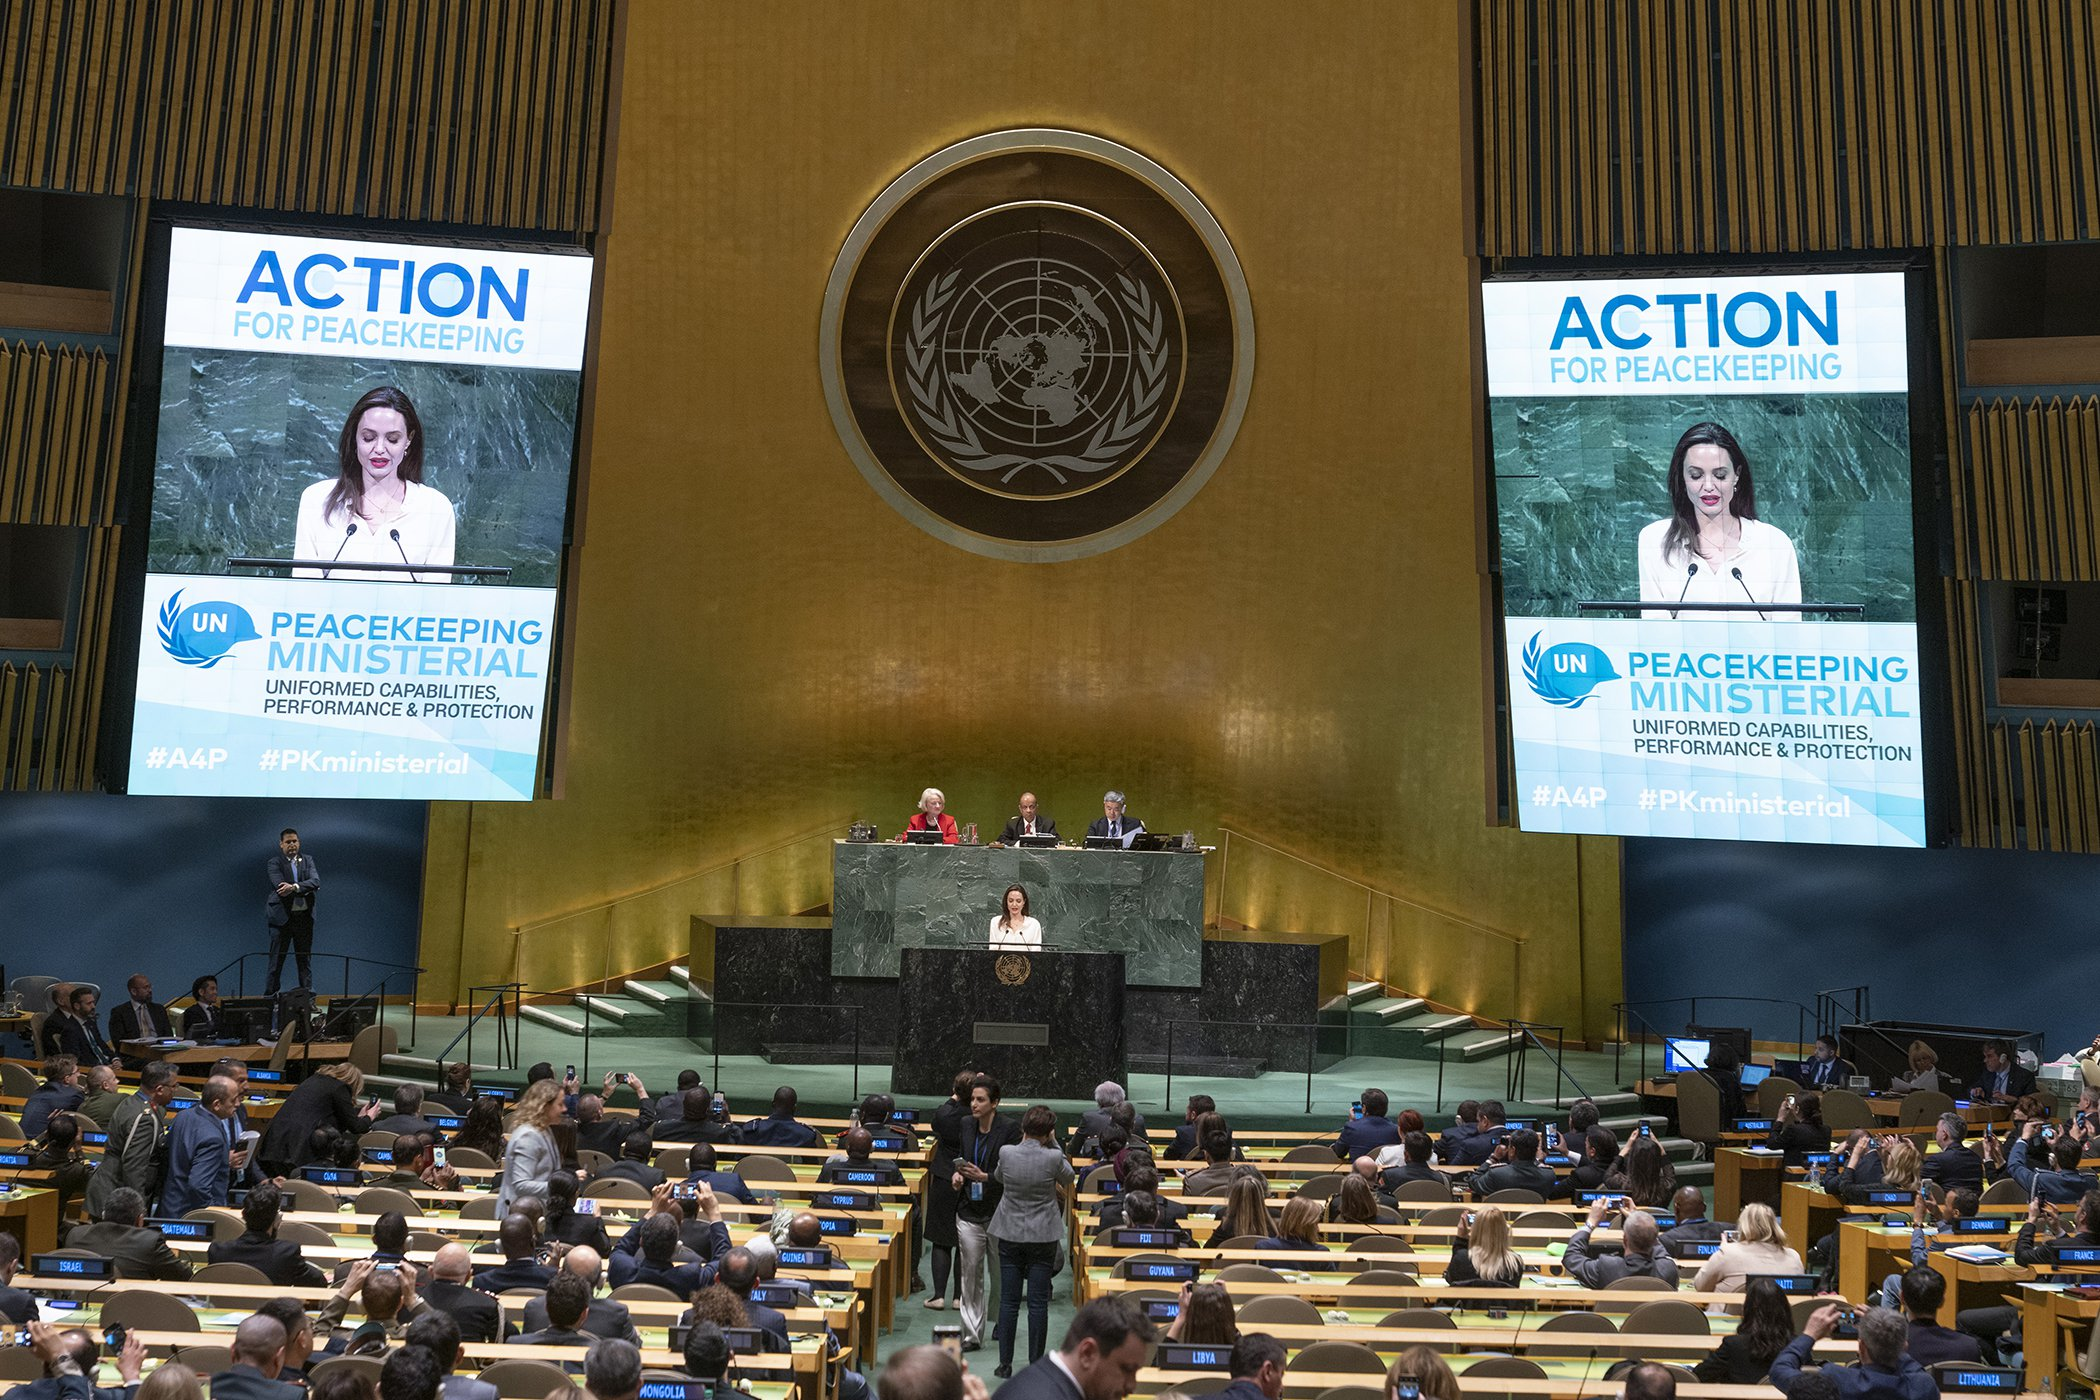 Angelina-Jolie-UN-Gender-Equality-2019-Speech.jpg